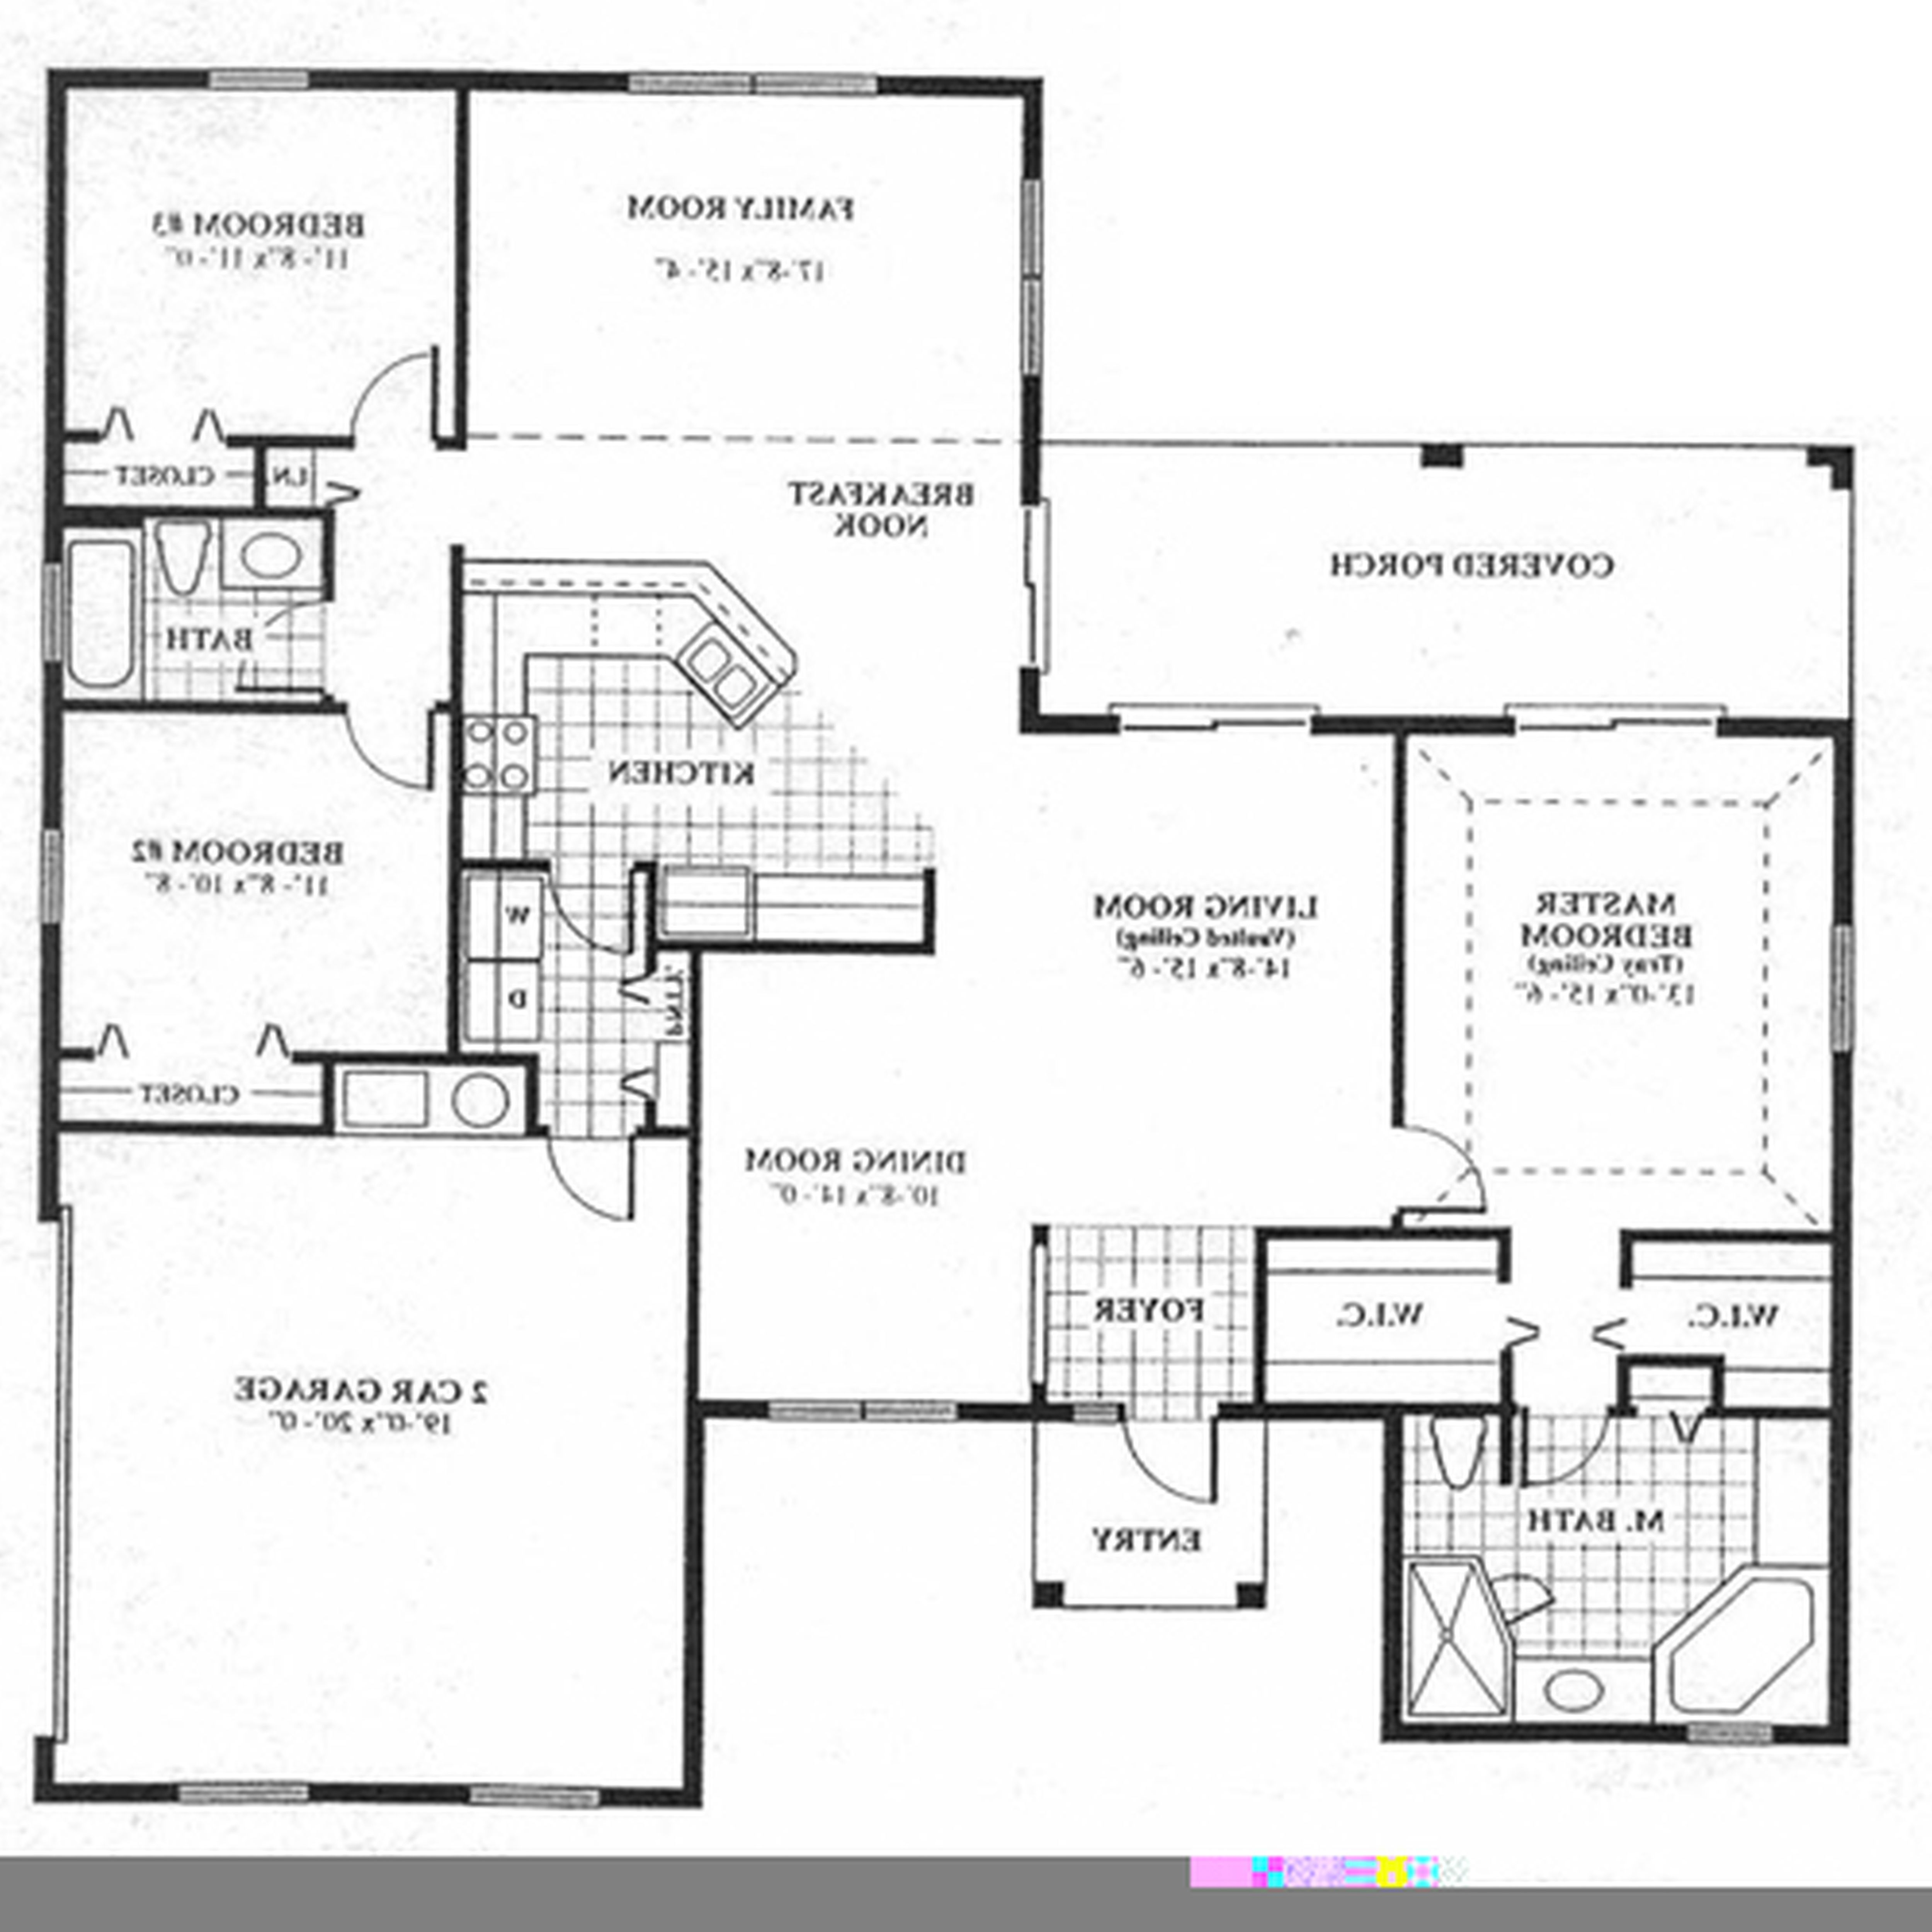 best residential house plans and designs.  Software Design House Home Room Apartment Kitchen White Luxury Layout Total Pics Best Free Idea architecture interactive floor plan software design plans